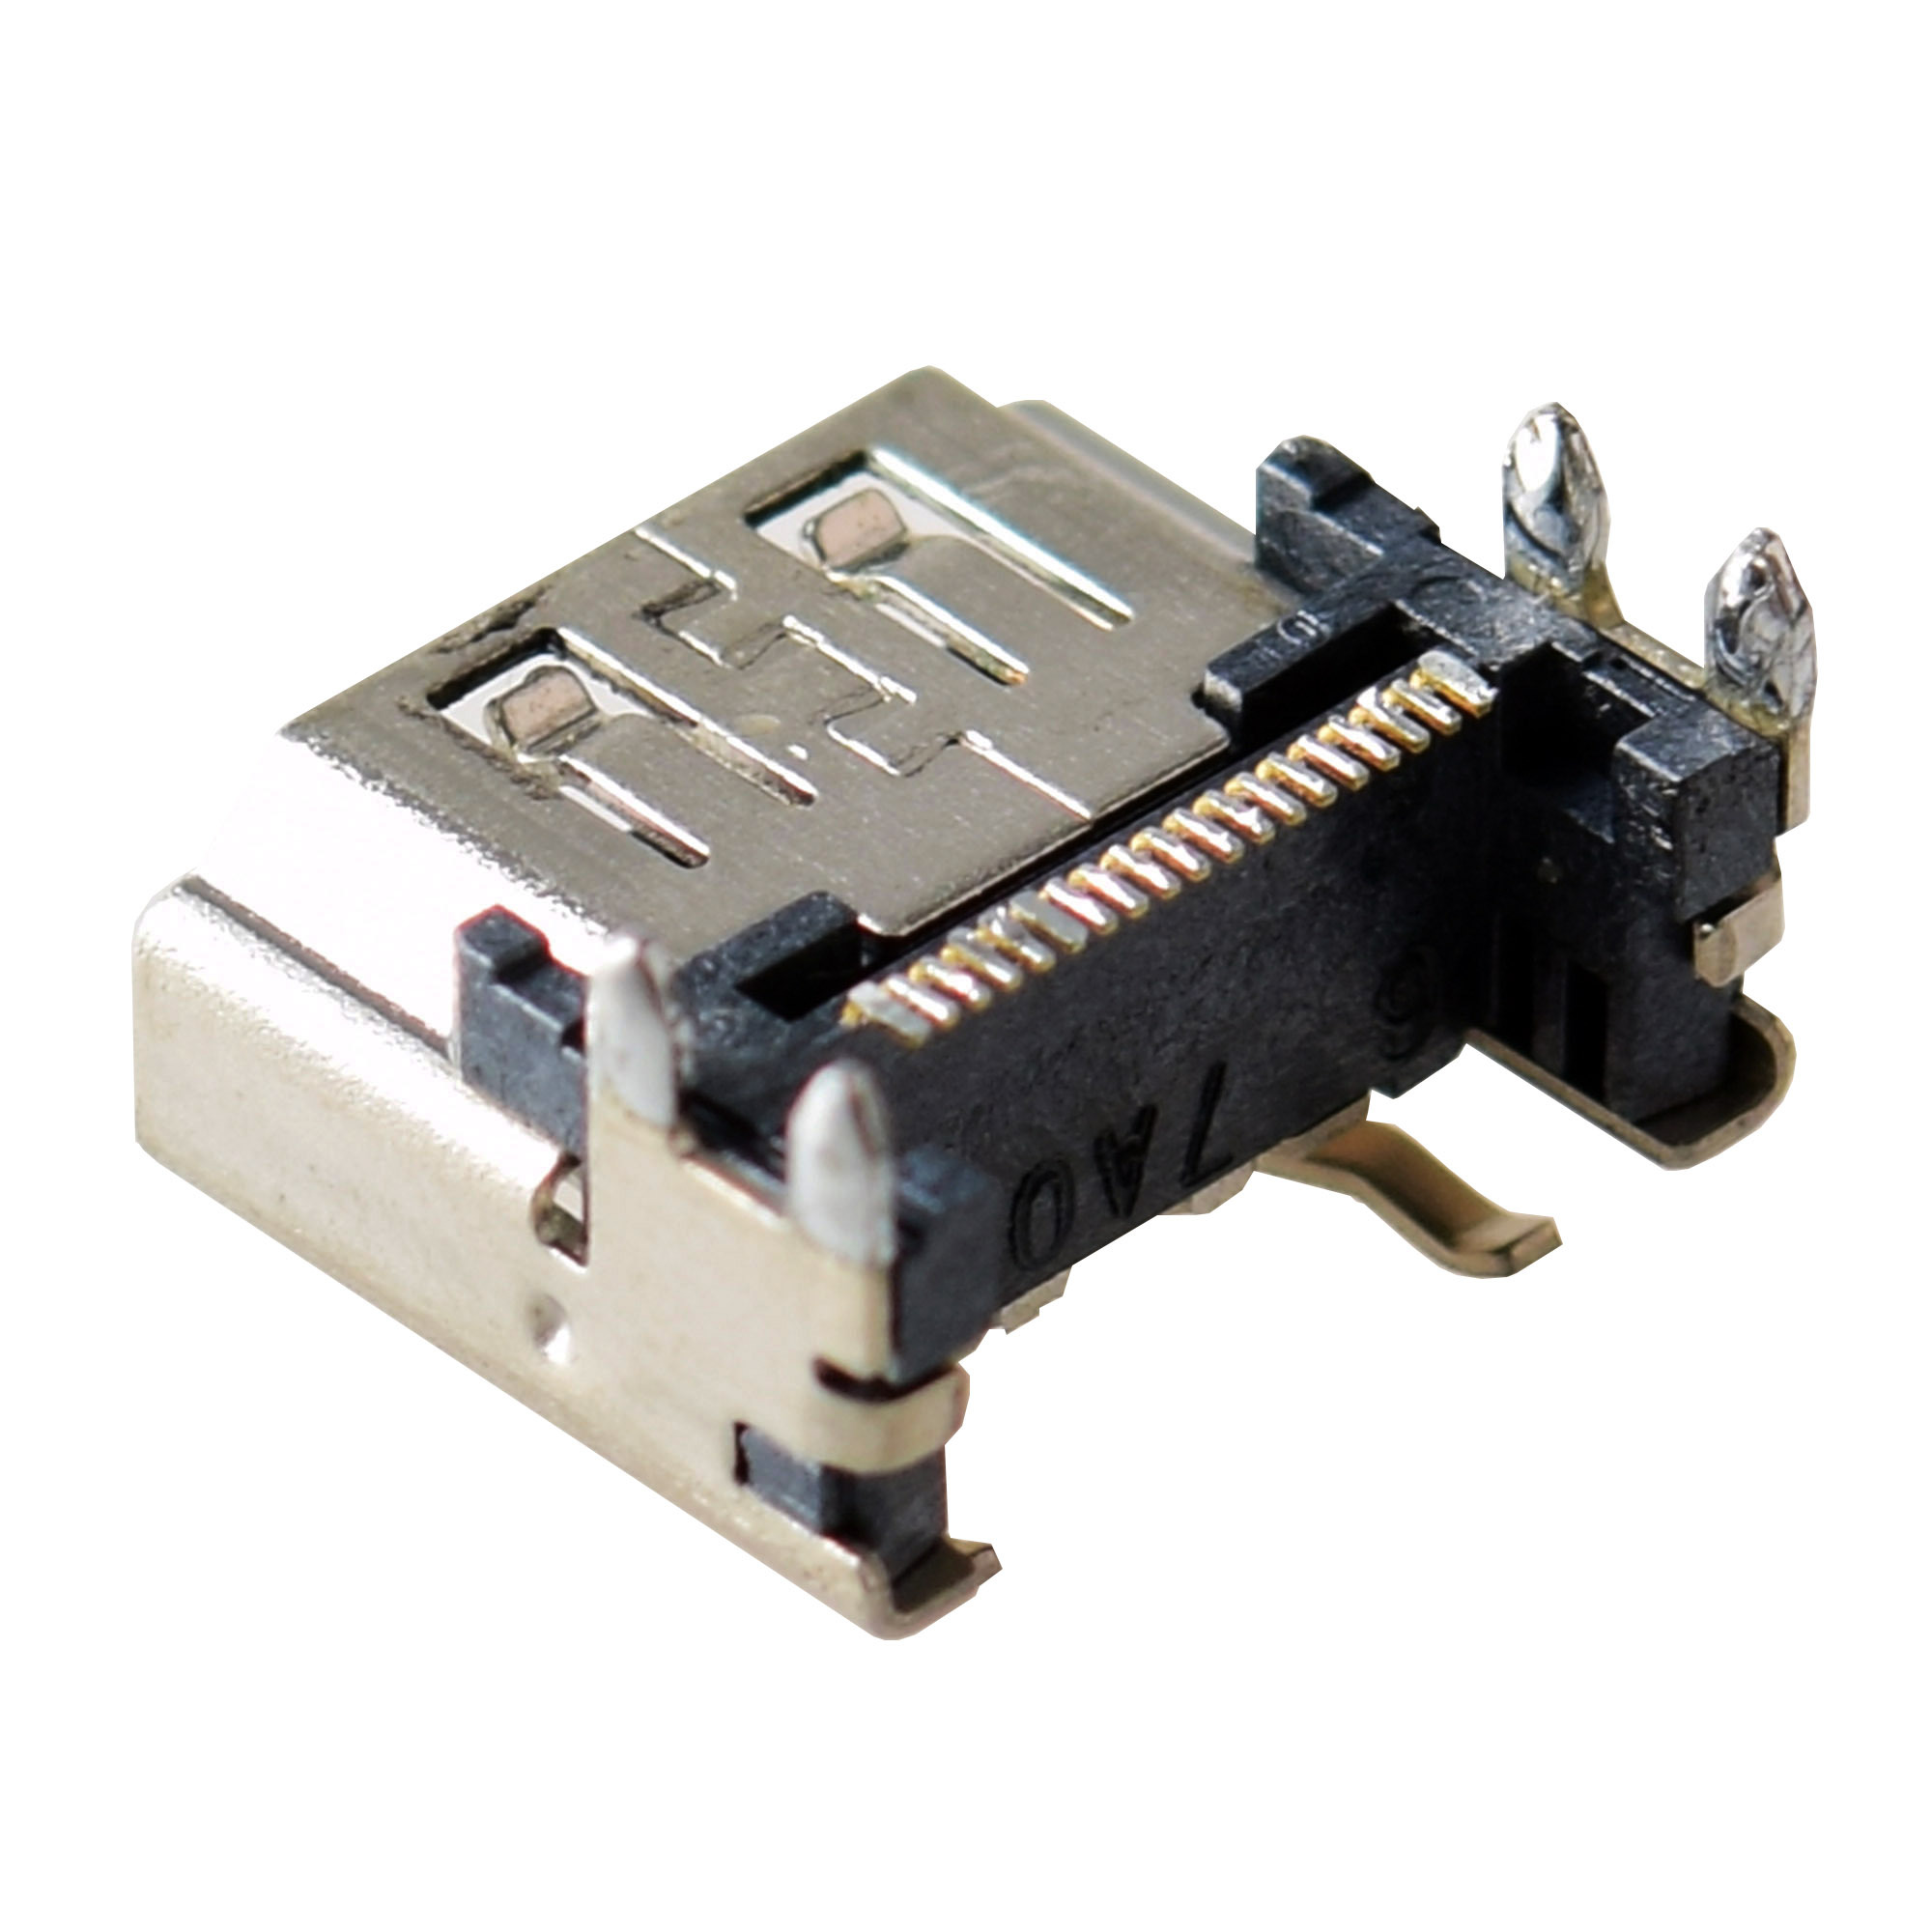 Replacement Repair Parts Hdmi Connector Ports Socket For Sony Ps